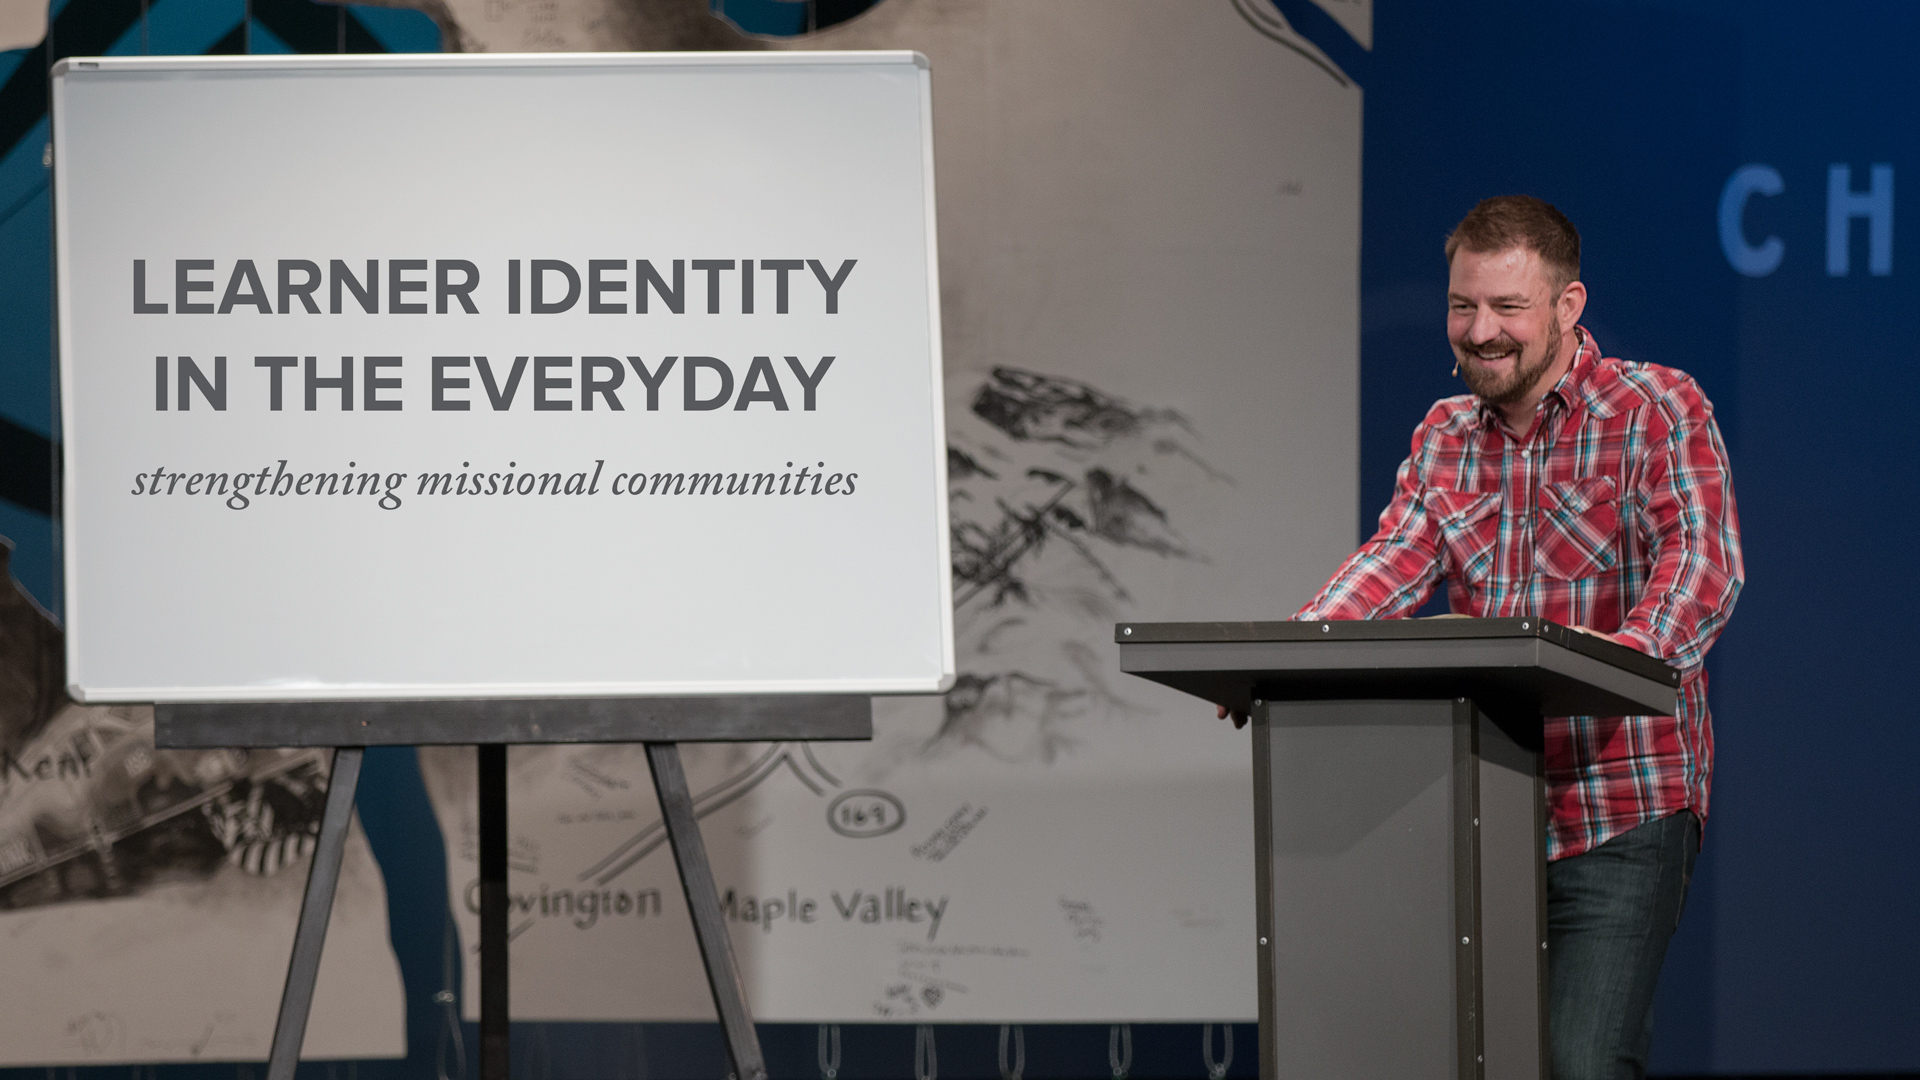 Learner Identity in the Everyday